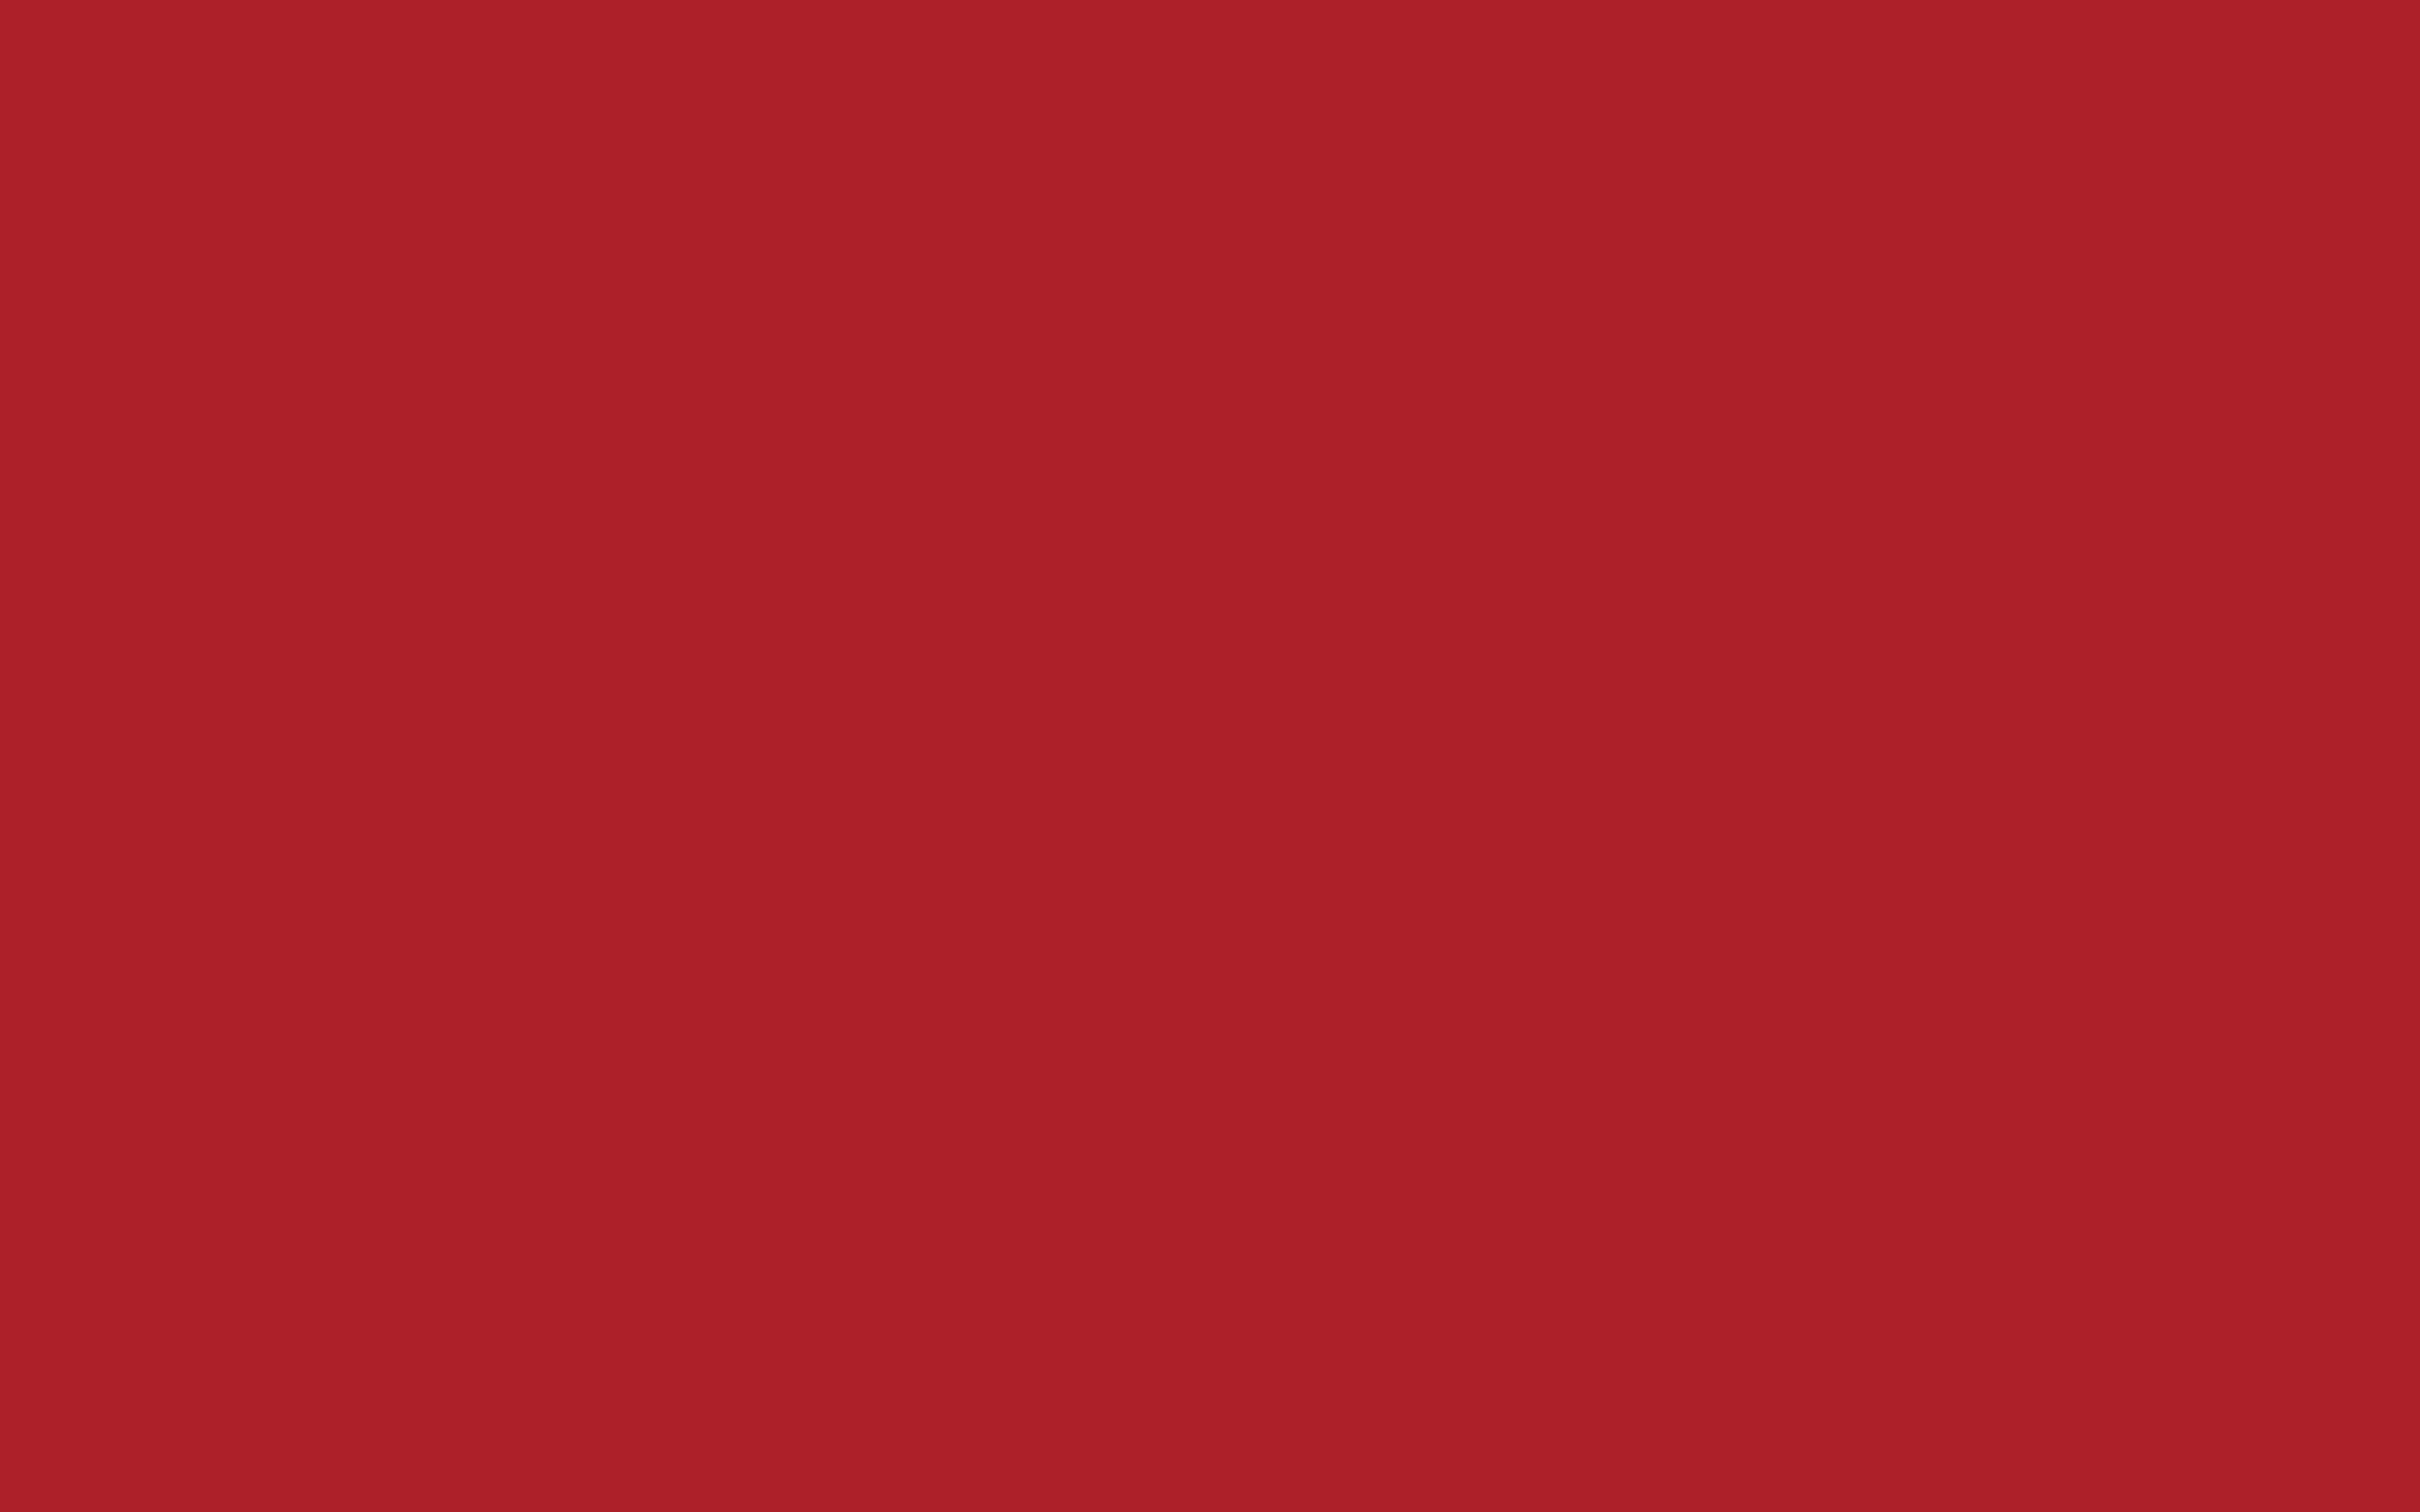 2560x1600 Upsdell Red Solid Color Background